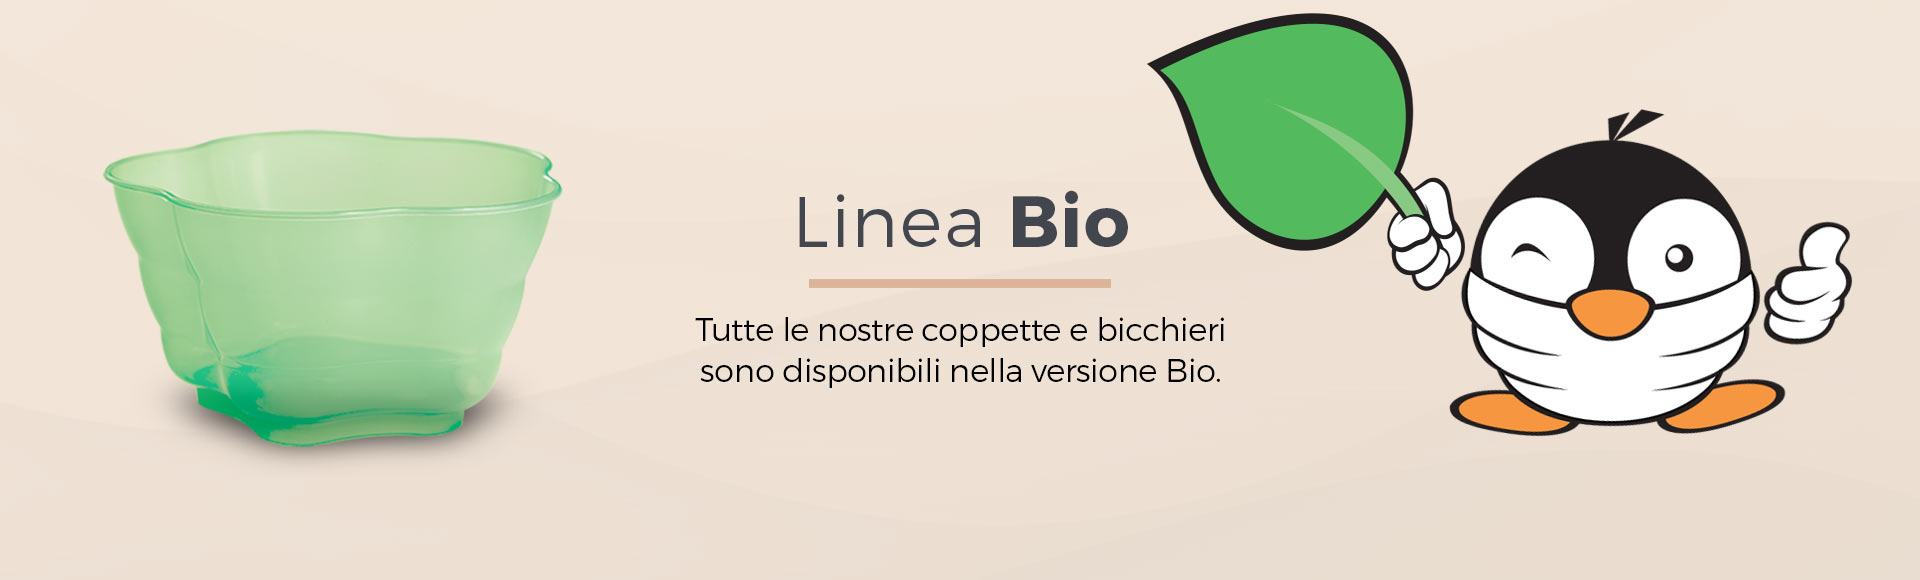 it-header-linea-bio